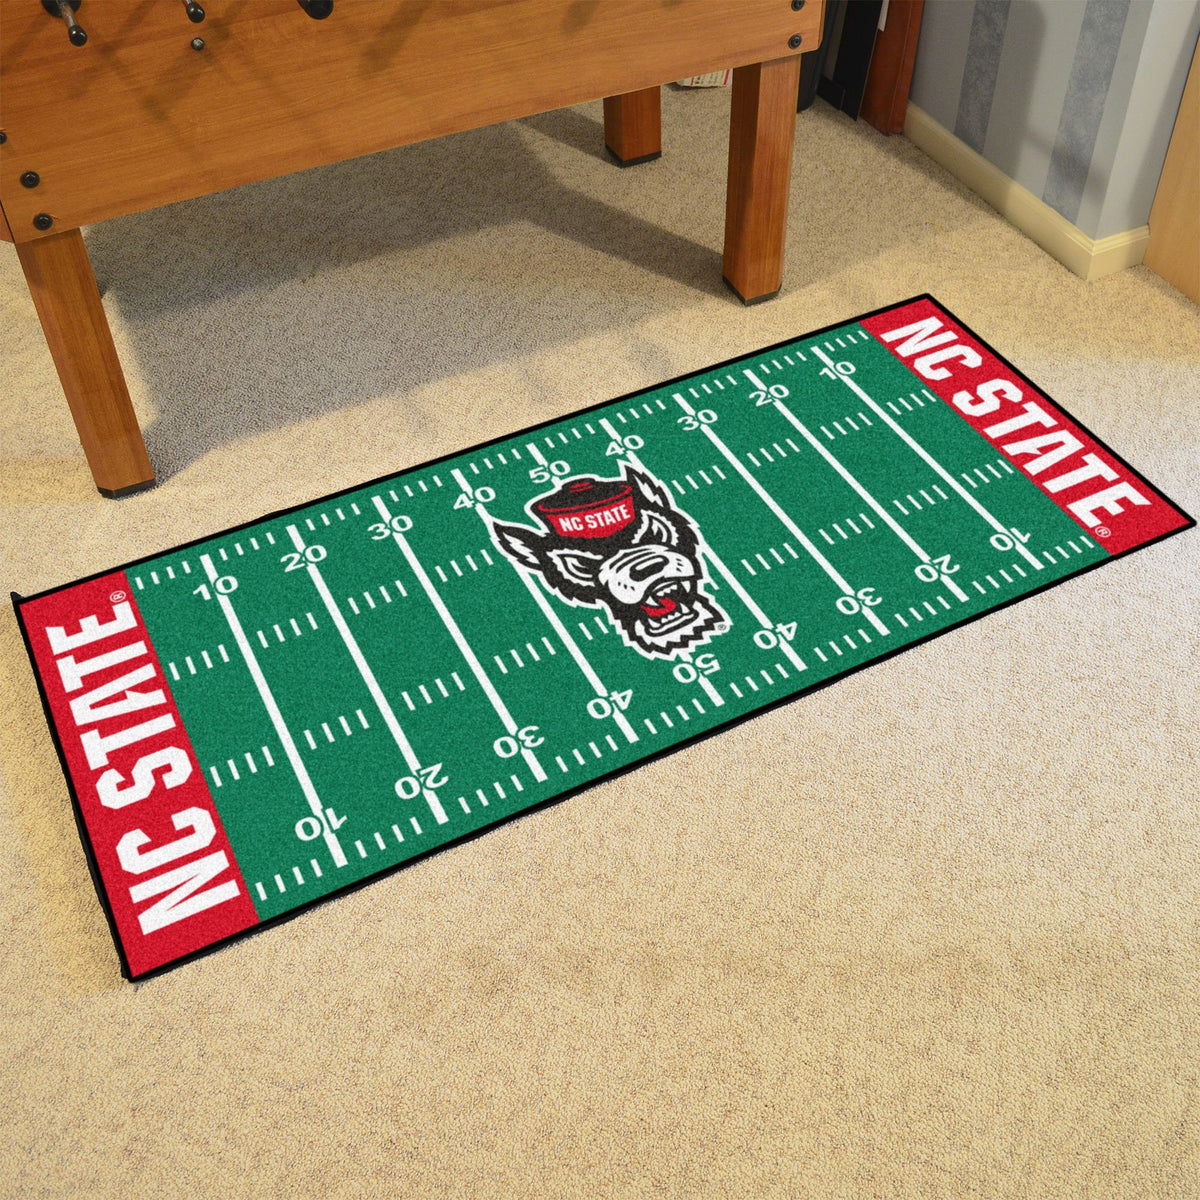 Collegiate - Football Field Runner Collegiate Mats, Rectangular Mats, Football Field Runner, Collegiate, Home Fan Mats NC State 2